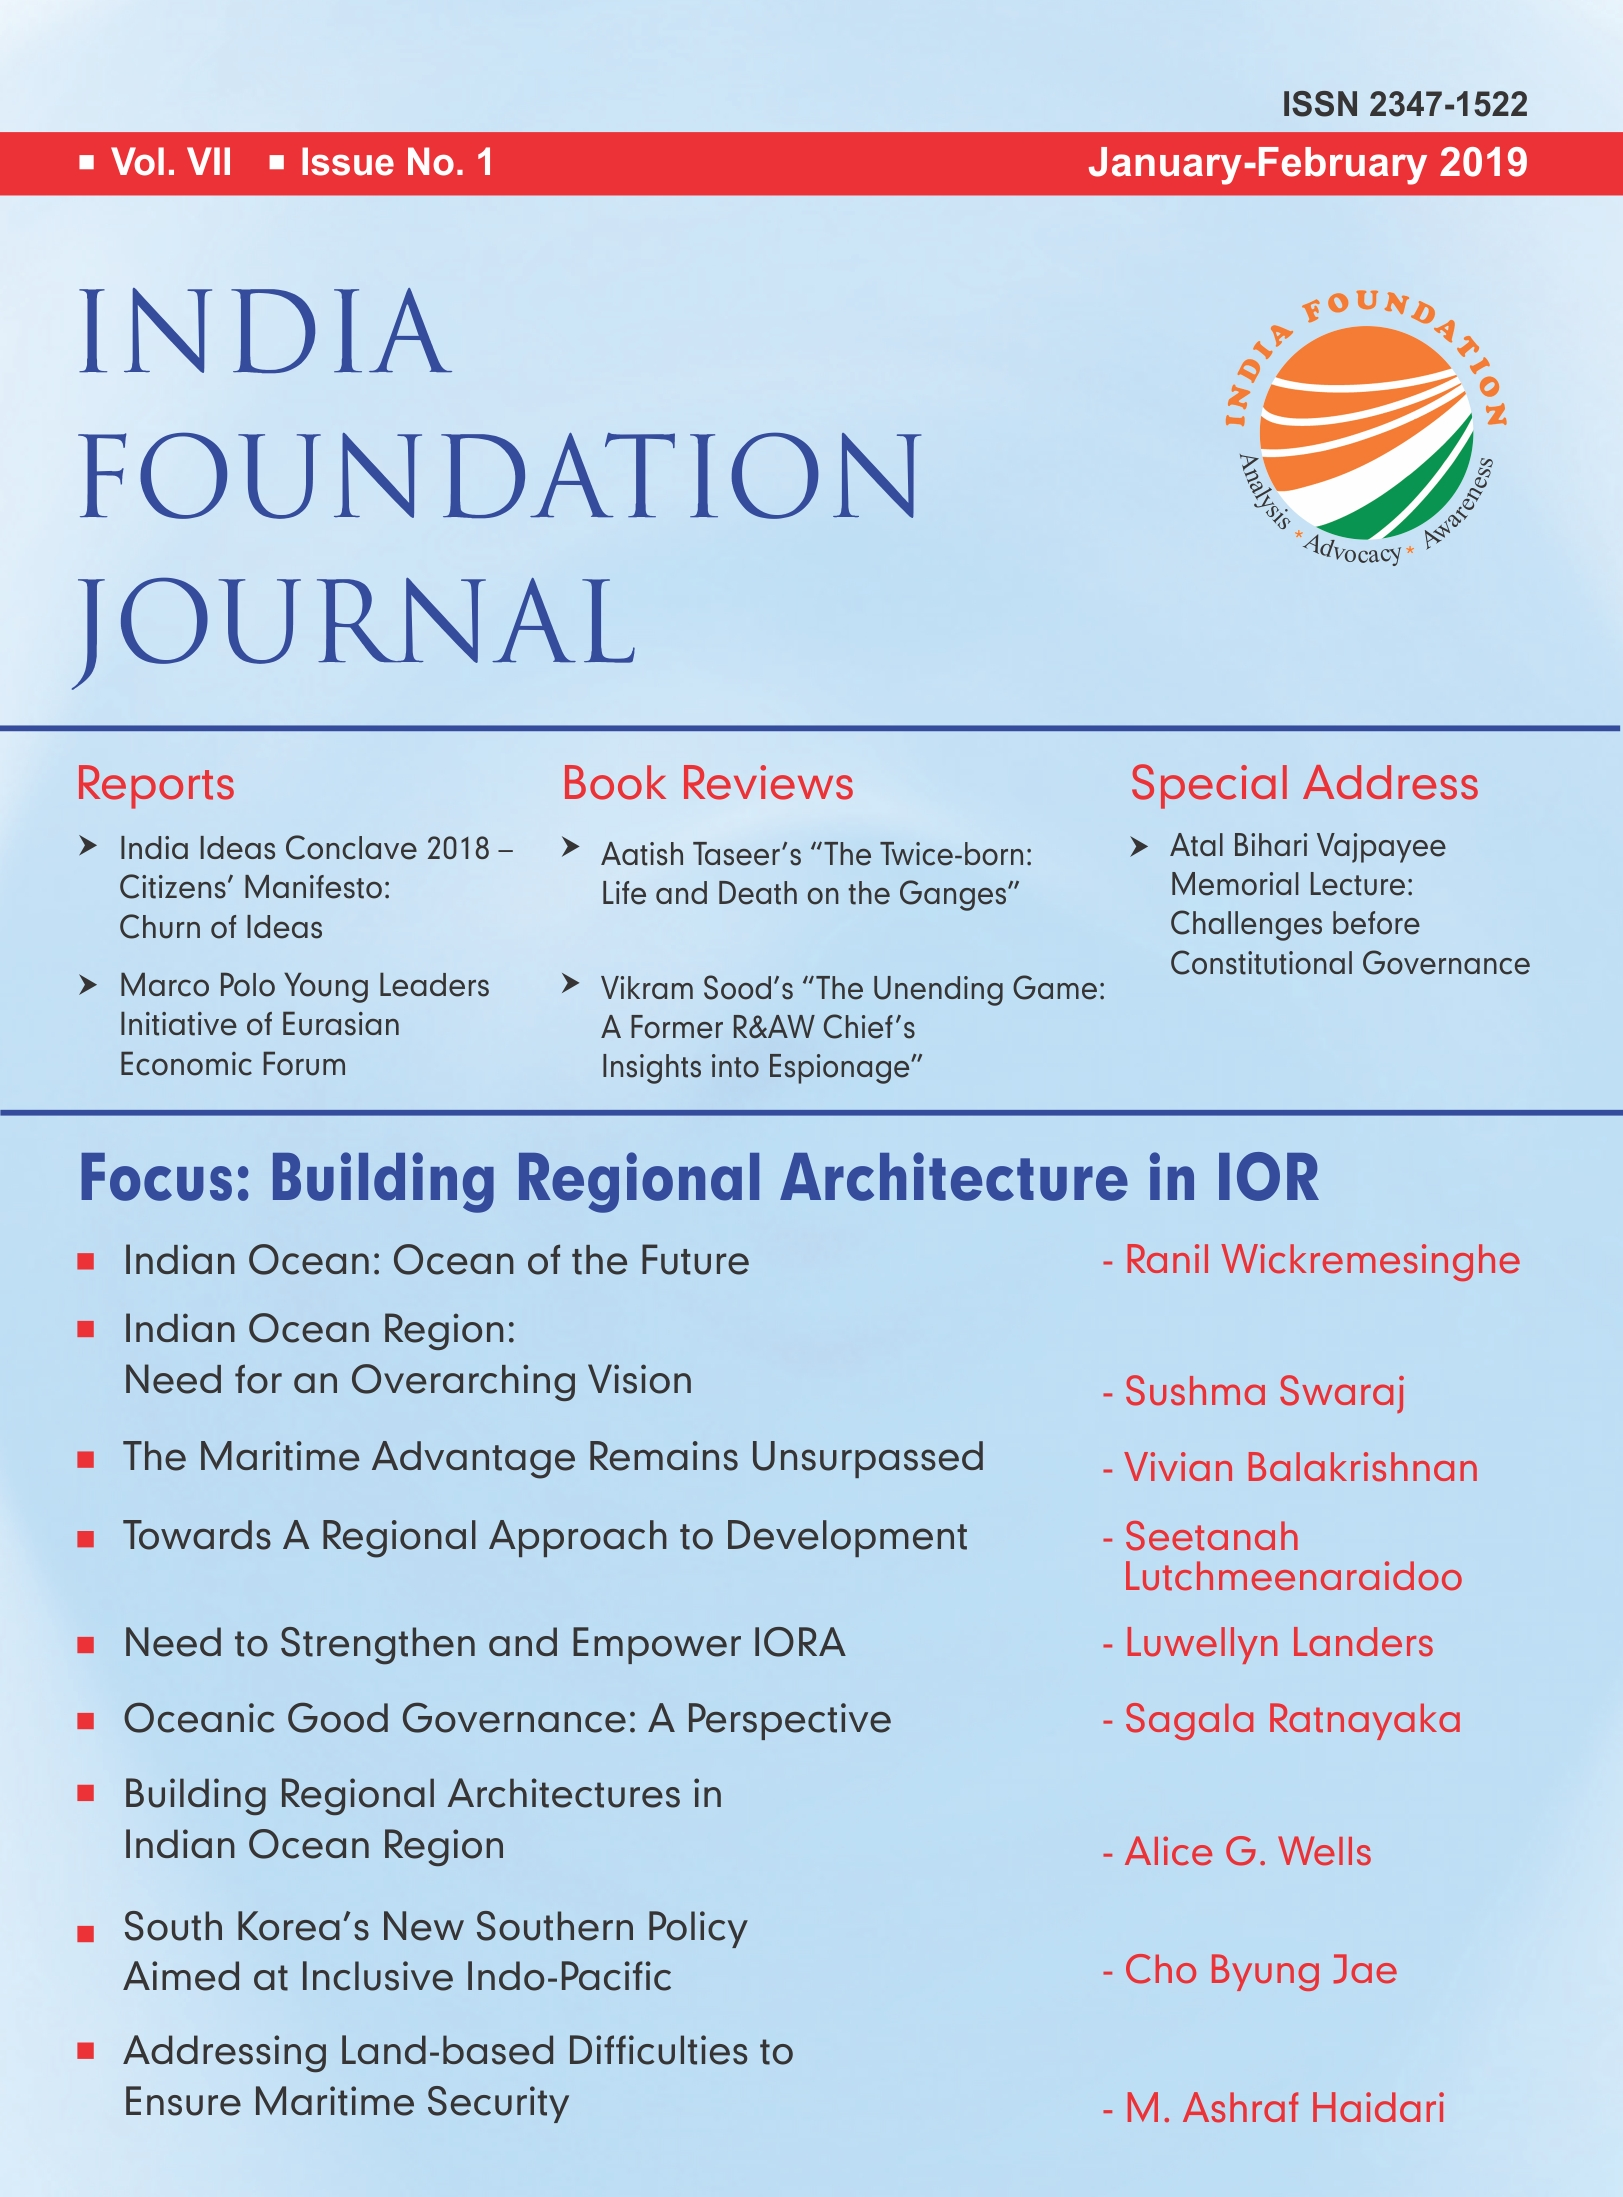 INDIA FOUNDATION JOURNAL VOL VII – ISSUE NO 1